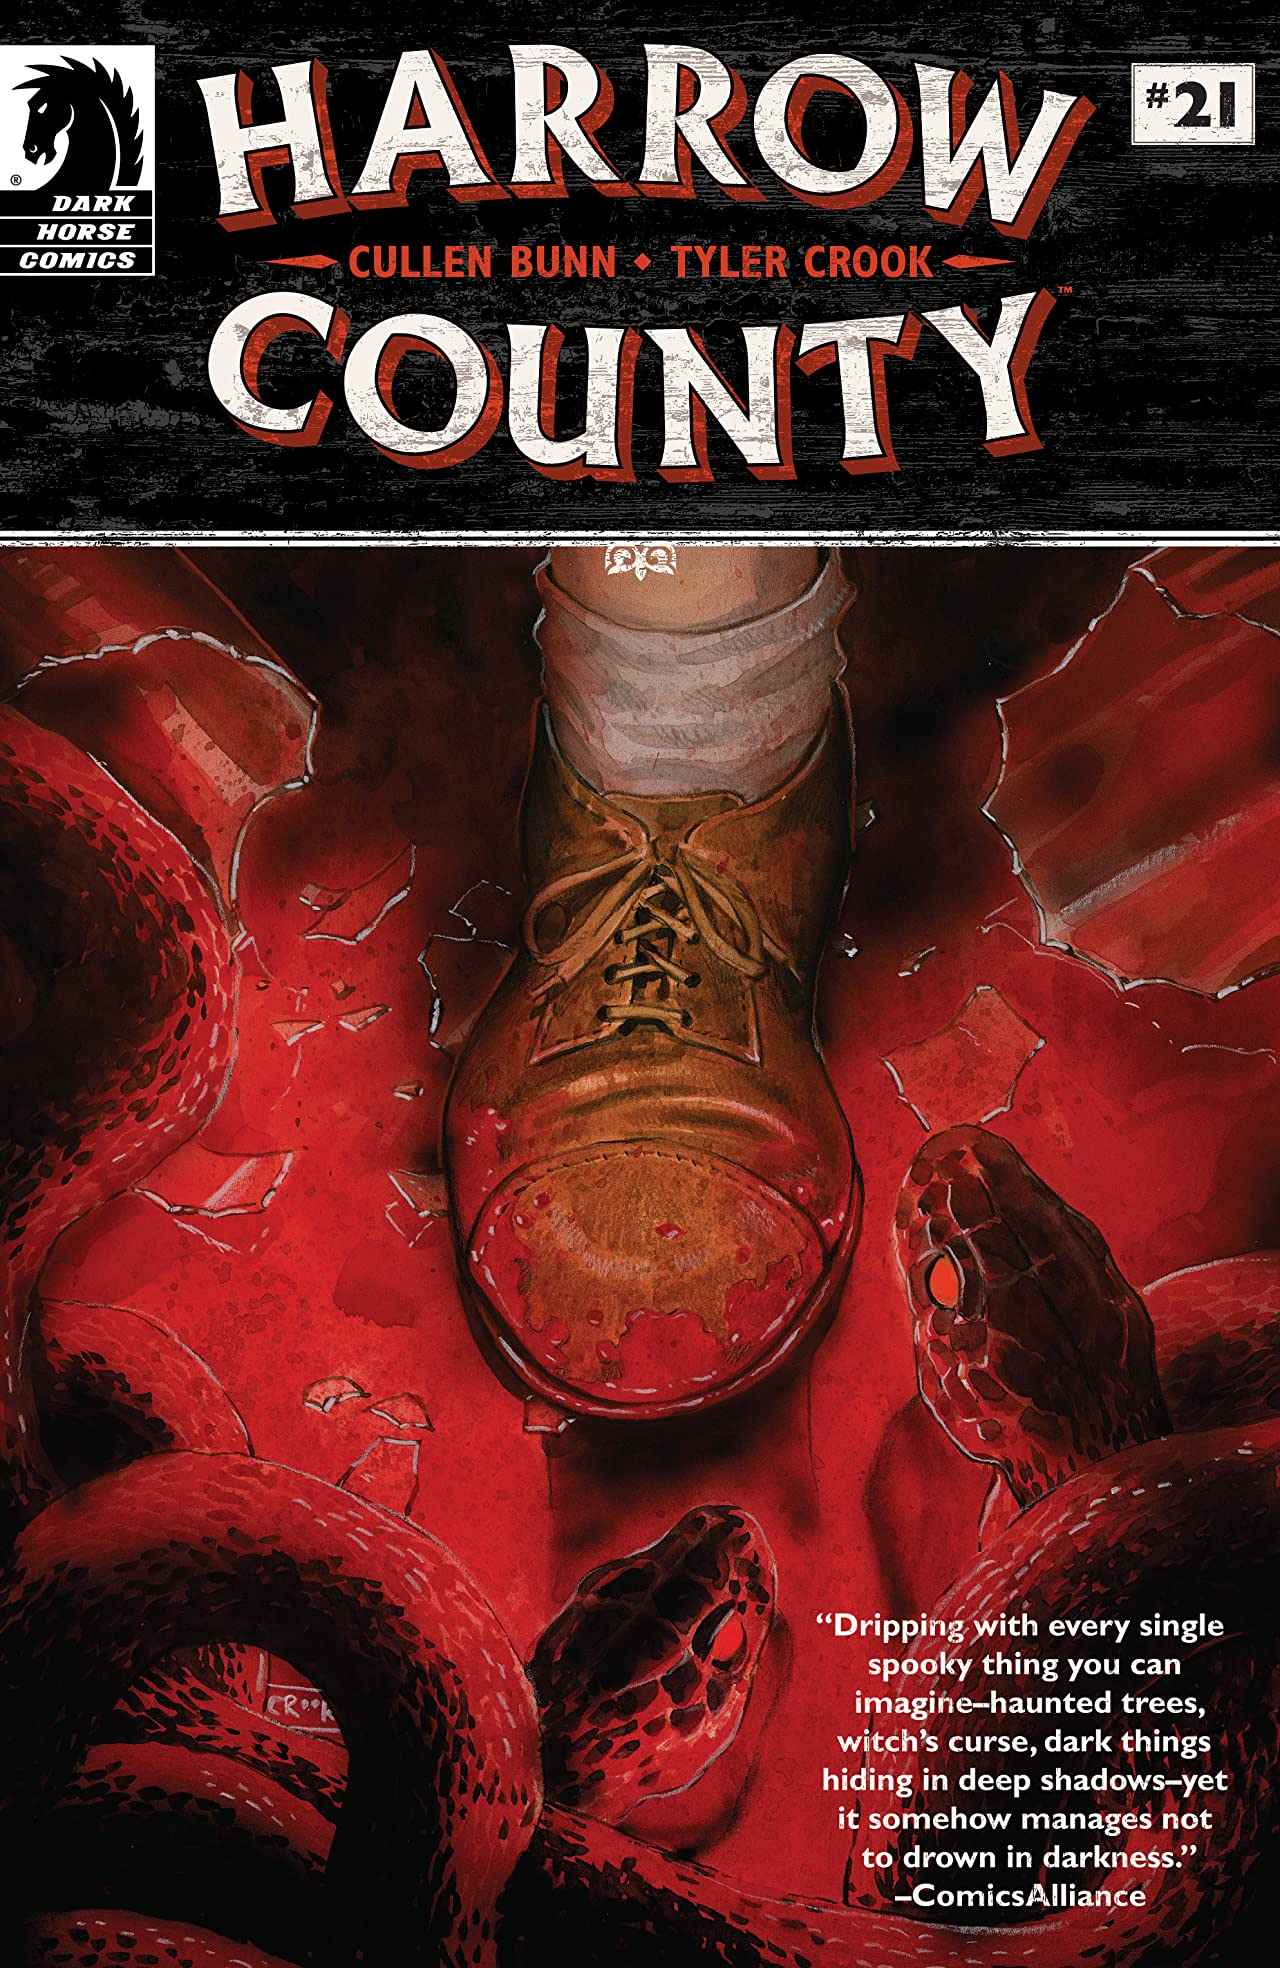 Harrow County #21